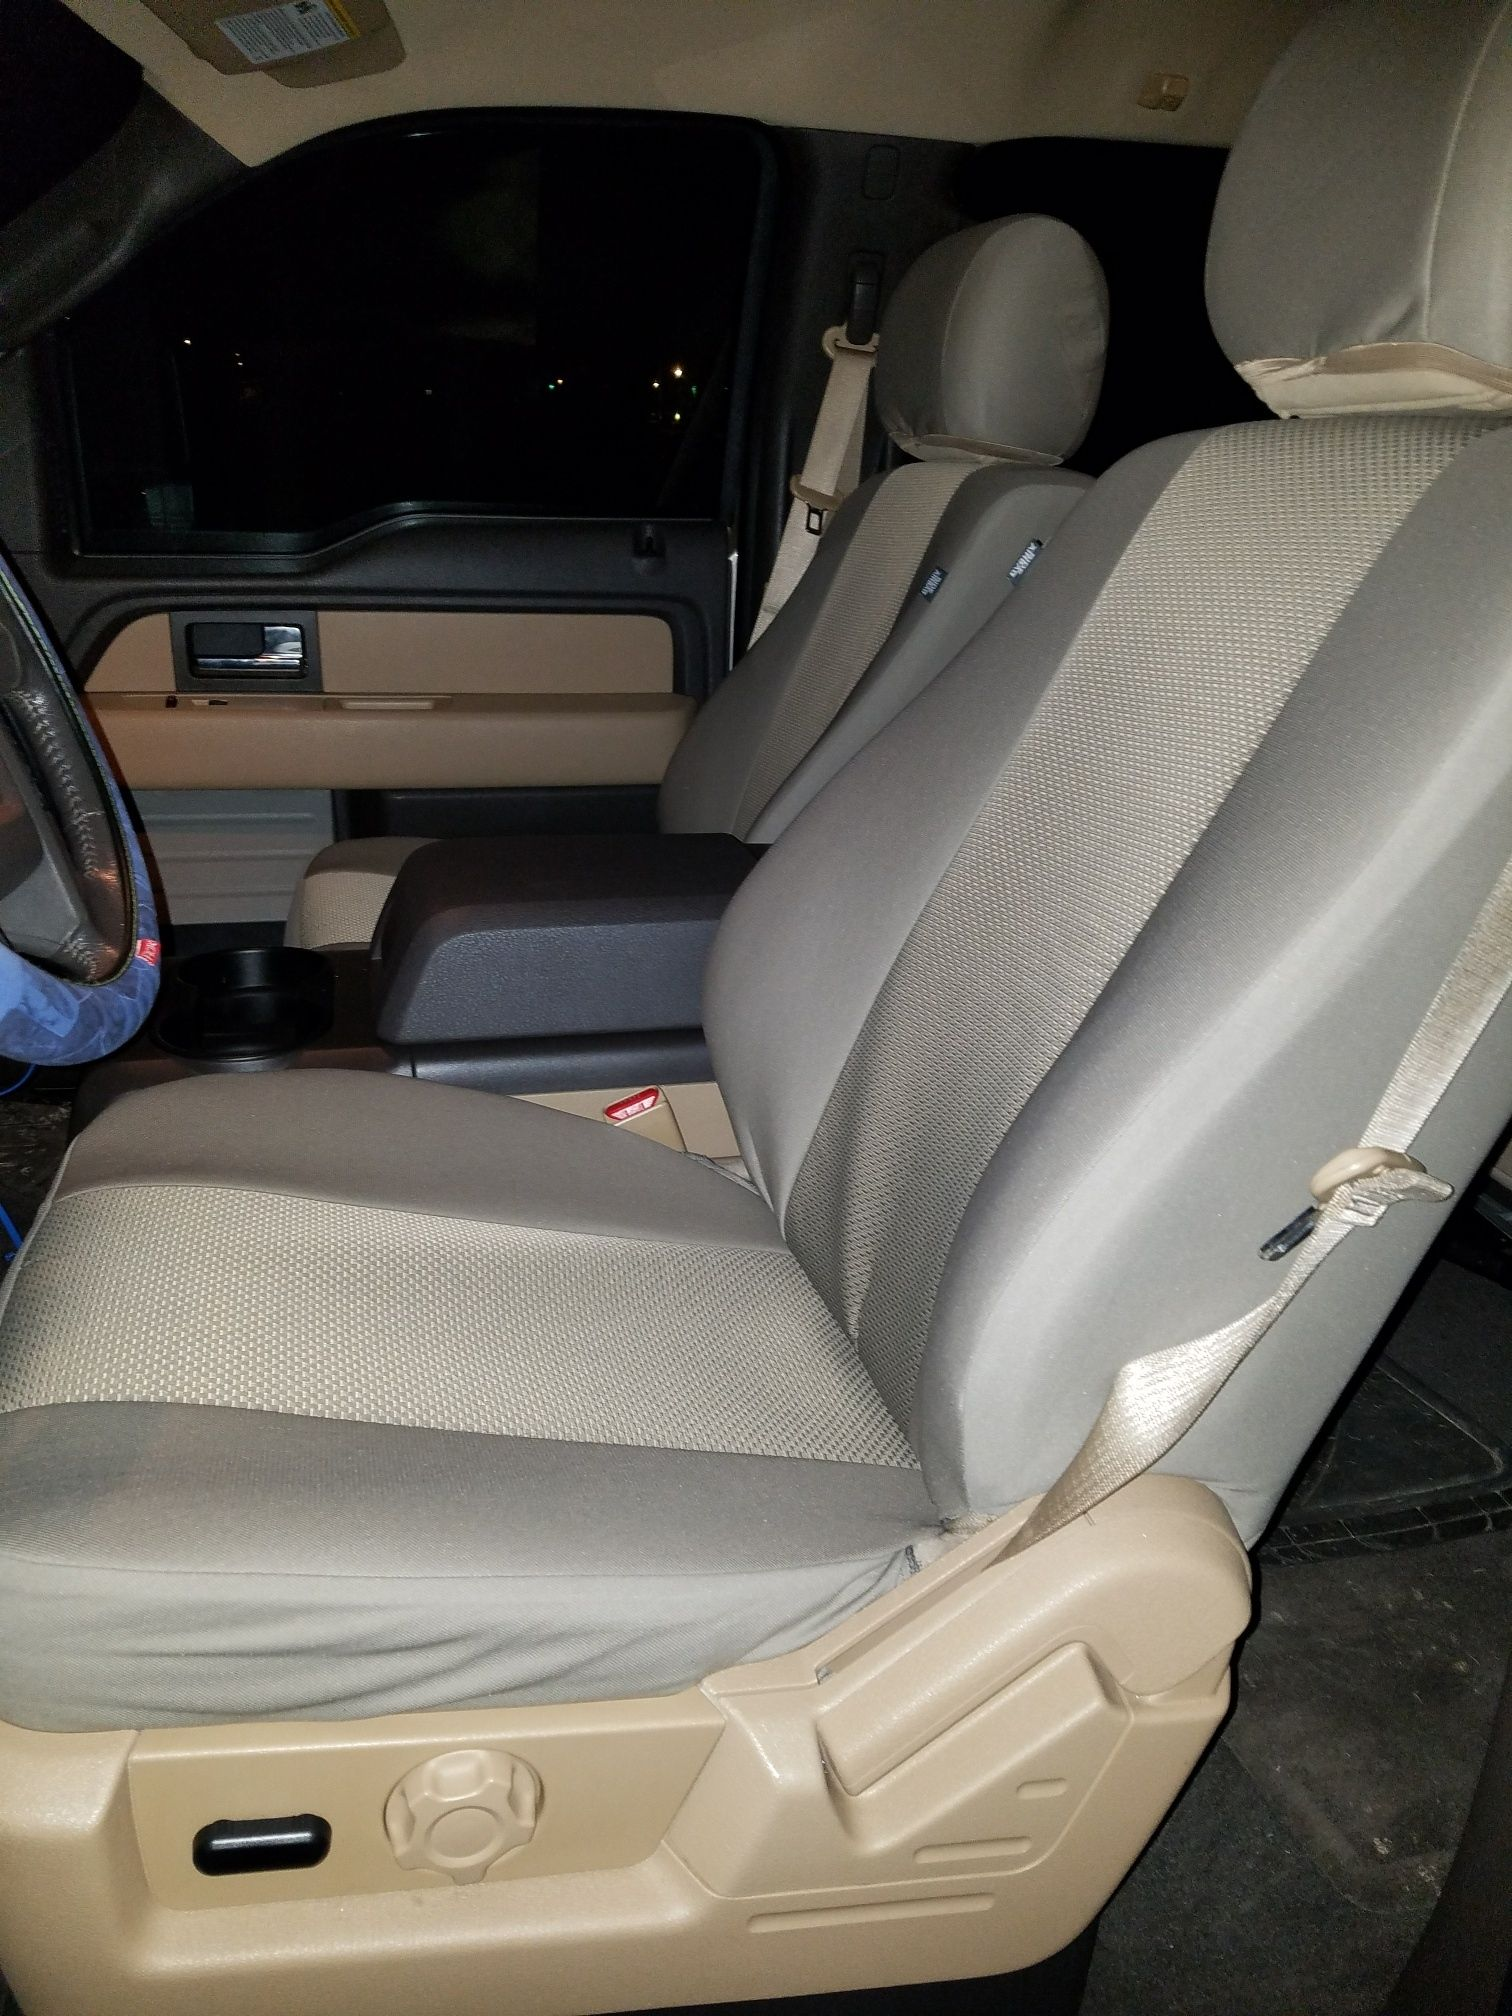 Luxury 1996 Ford Ranger Seat Covers Https Jetsuv Com Luxury 1996 Ford Ranger Seat Covers Fordcars 1996fordrangerbenchseatcovers 1996fordrange Ford Ranger